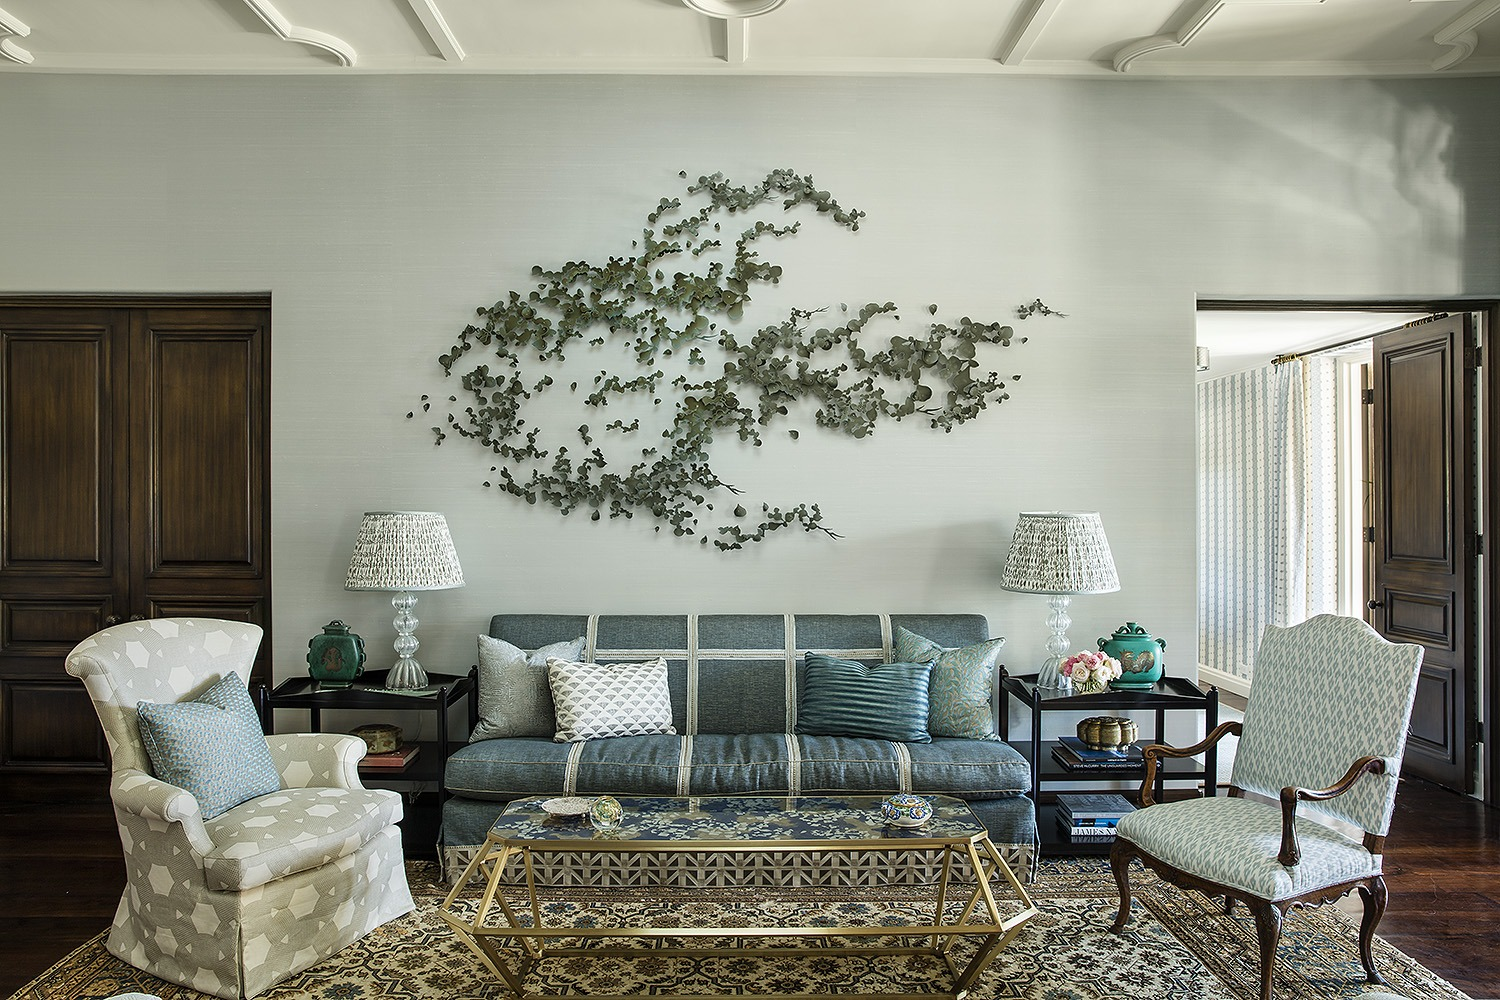 Spring Cleaning 2019: What Home Décor Trends to Toss & What to Store